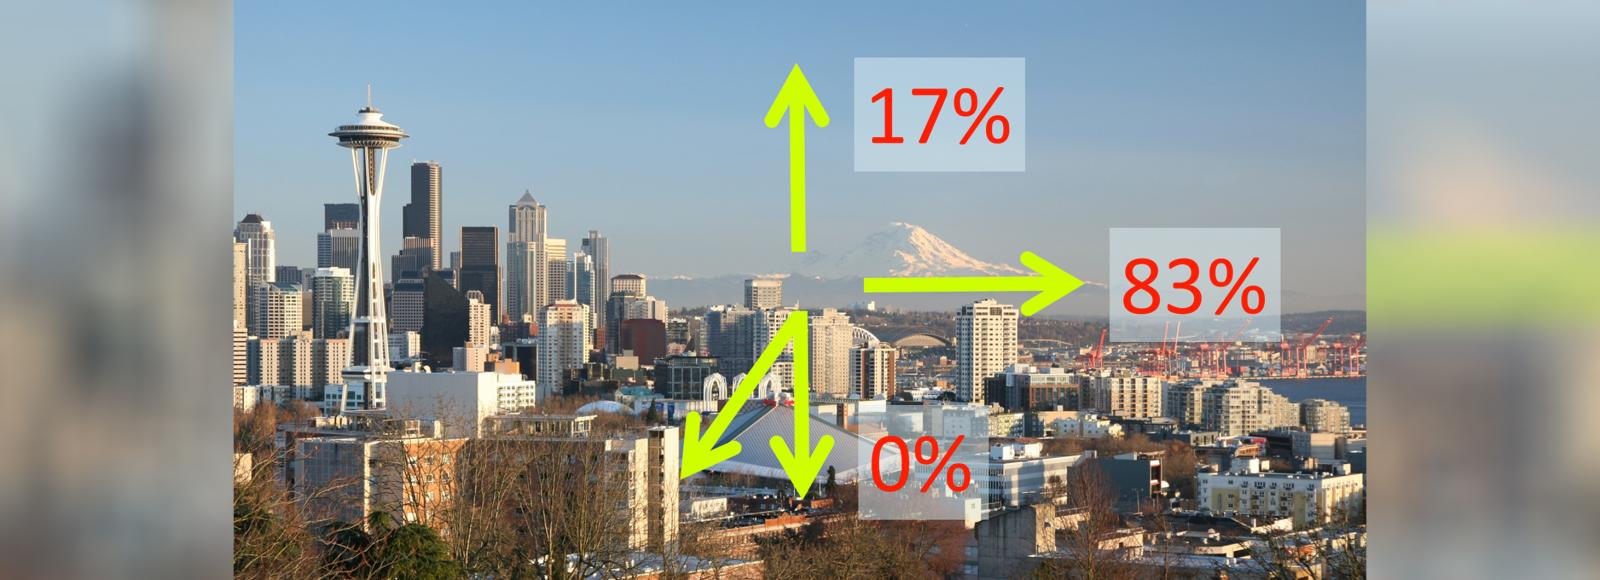 A city skyline with graphics showing evaporation amounts